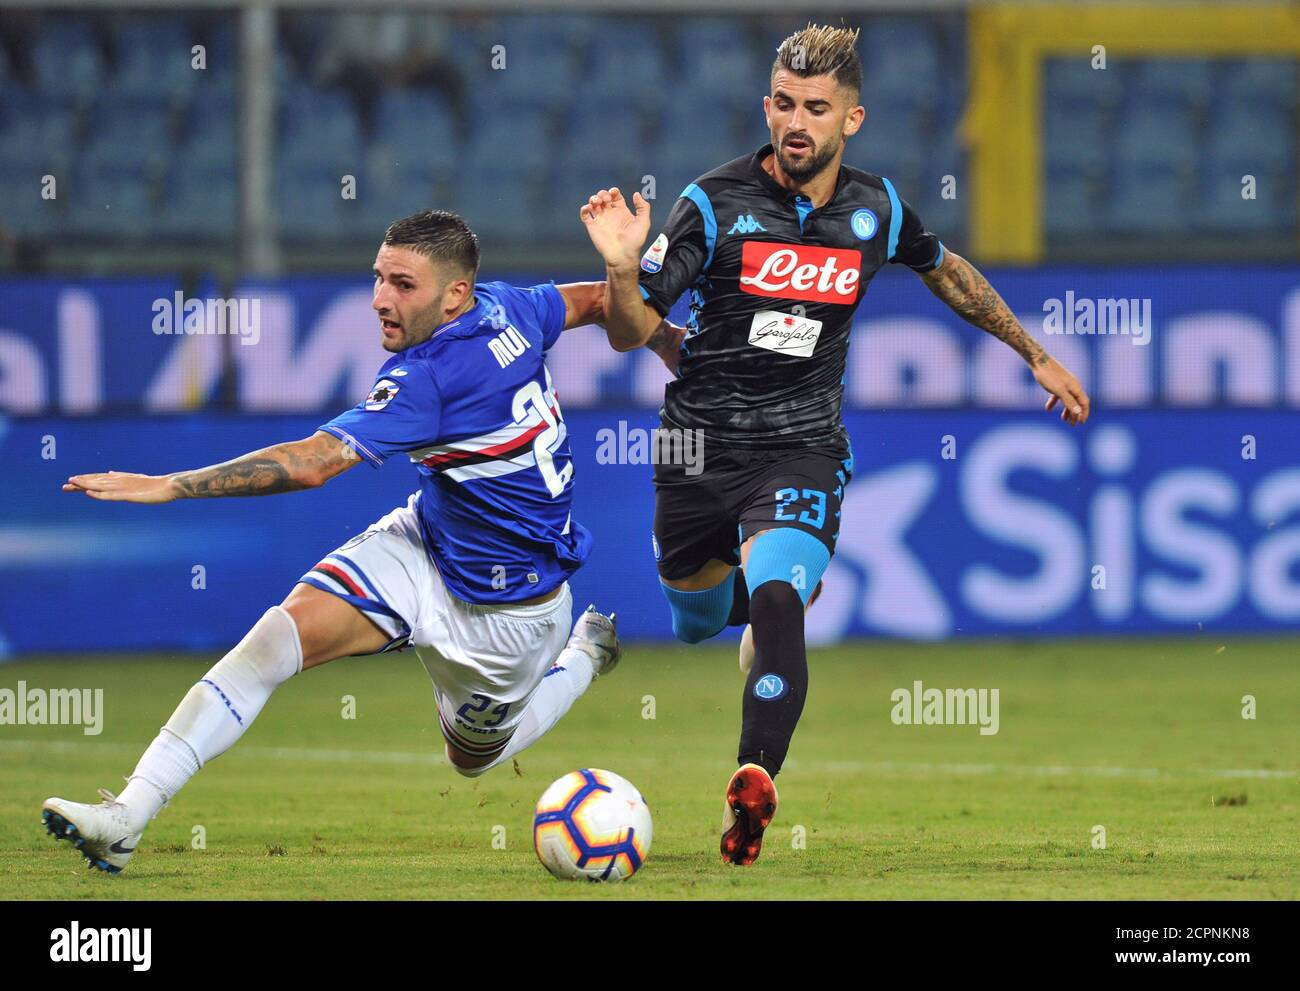 Soccer Football - Serie A - Sampdoria v Napoli - Stadio Comunale Luigi Ferraris, Genoa, Italy - September 2, 2018   Napoli's Elseid Hysaj in action with Sampdoria's Nicola Murru   REUTERS/Jennifer Lorenzini Stock Photo